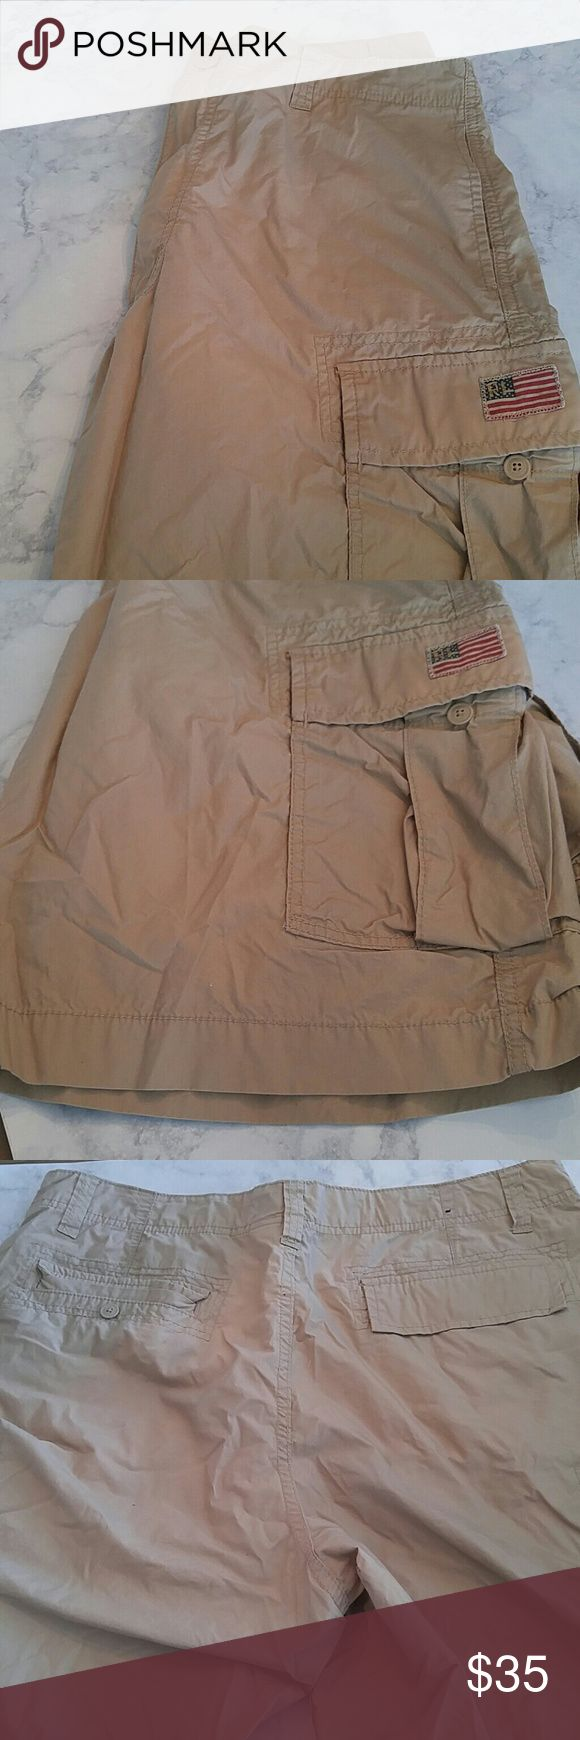 Ralph Lauren polo khaki shorts Cargo shorts. Light weight. Great condition! American flag patch on right side pocket. No obvious defects. Ralph Lauren Shorts Cargo